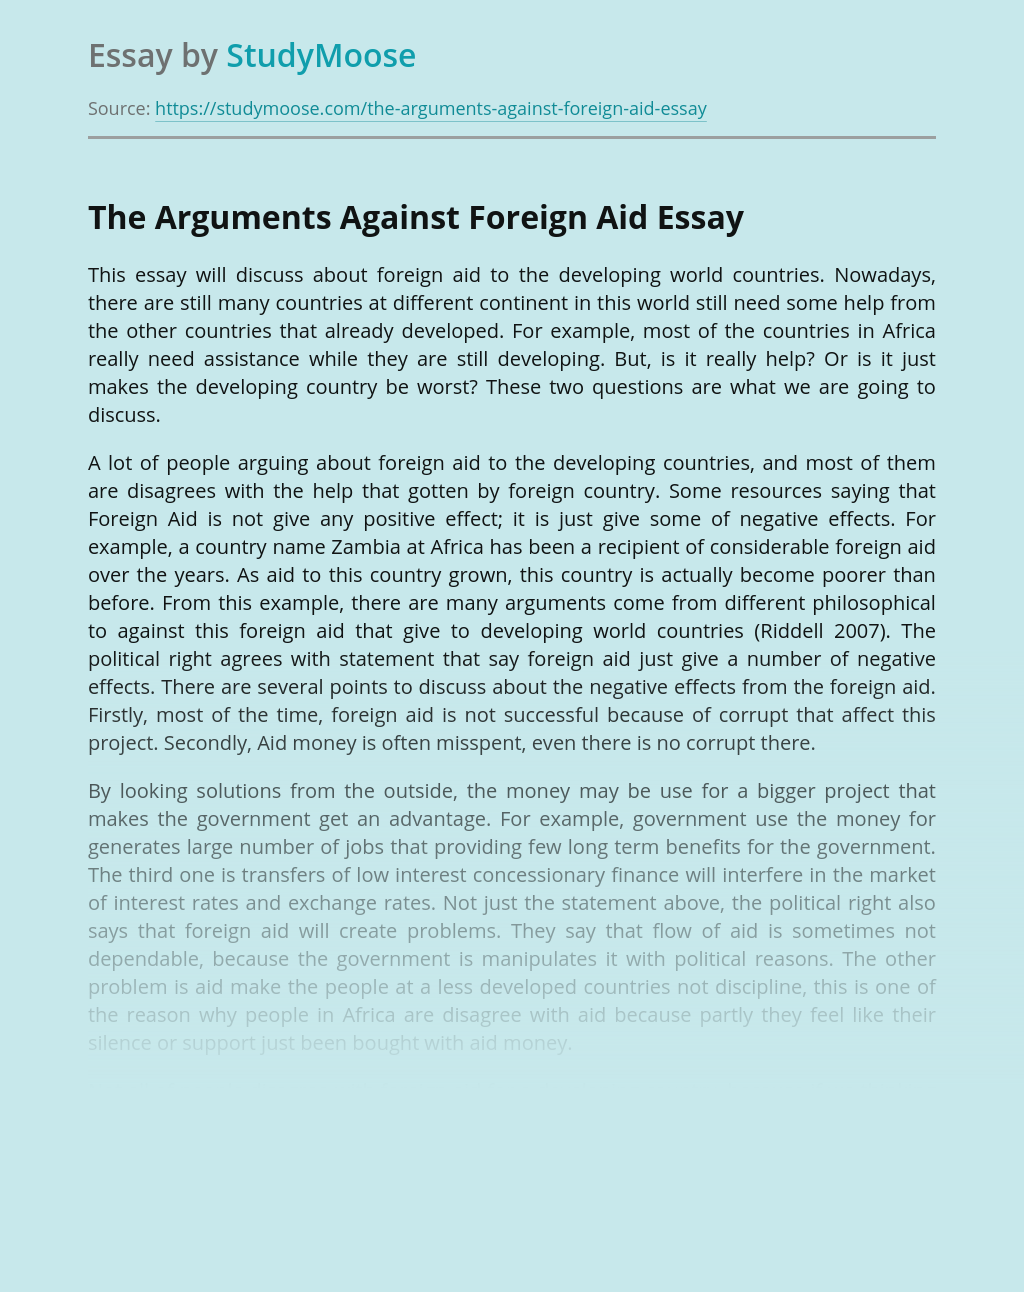 The Arguments Against Foreign Aid